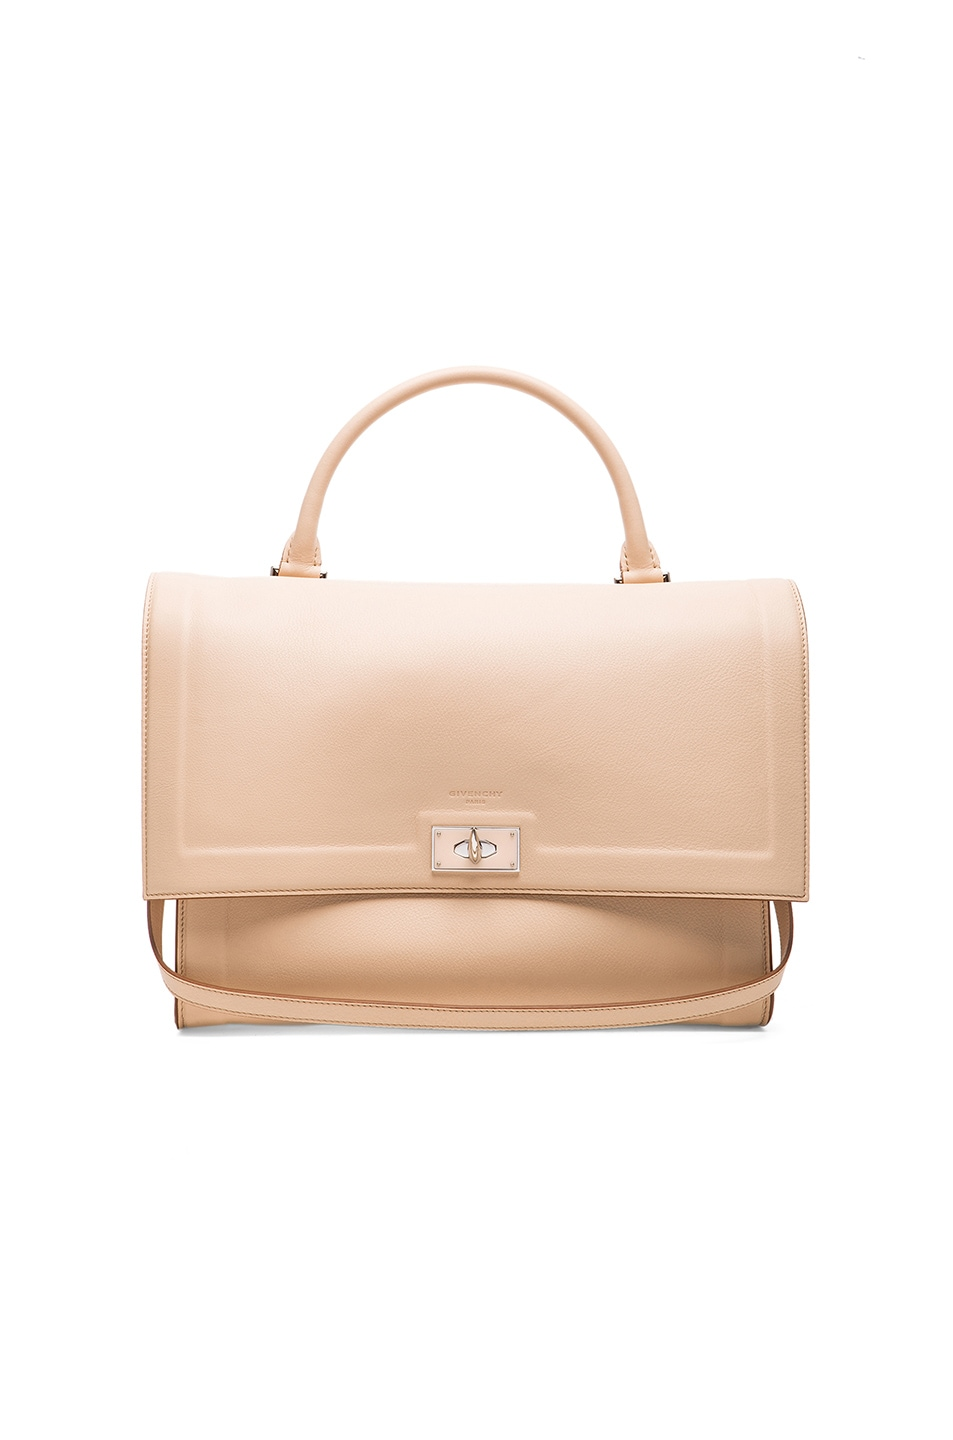 Image 1 of Givenchy Medium Waxy Leather & Plexi Shark in Light Beige